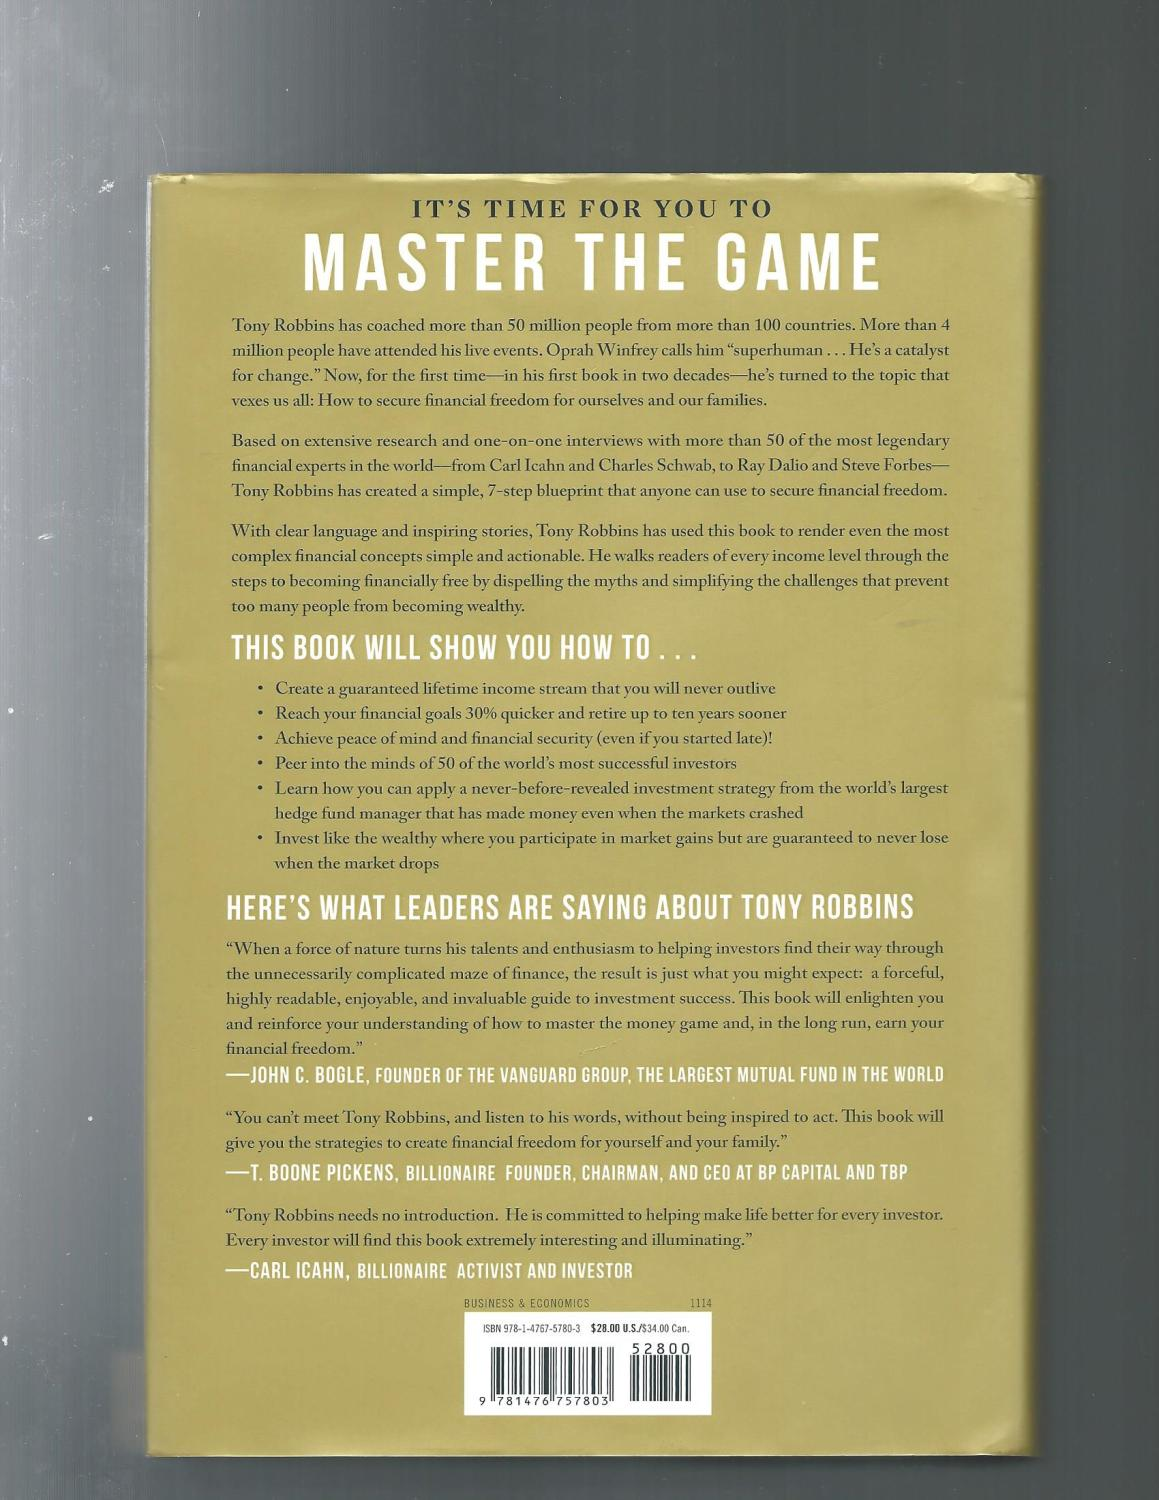 Money master the game 7 simple steps to financial freedom by tony money master the game 7 simple steps to financial freedom tony robbins malvernweather Image collections